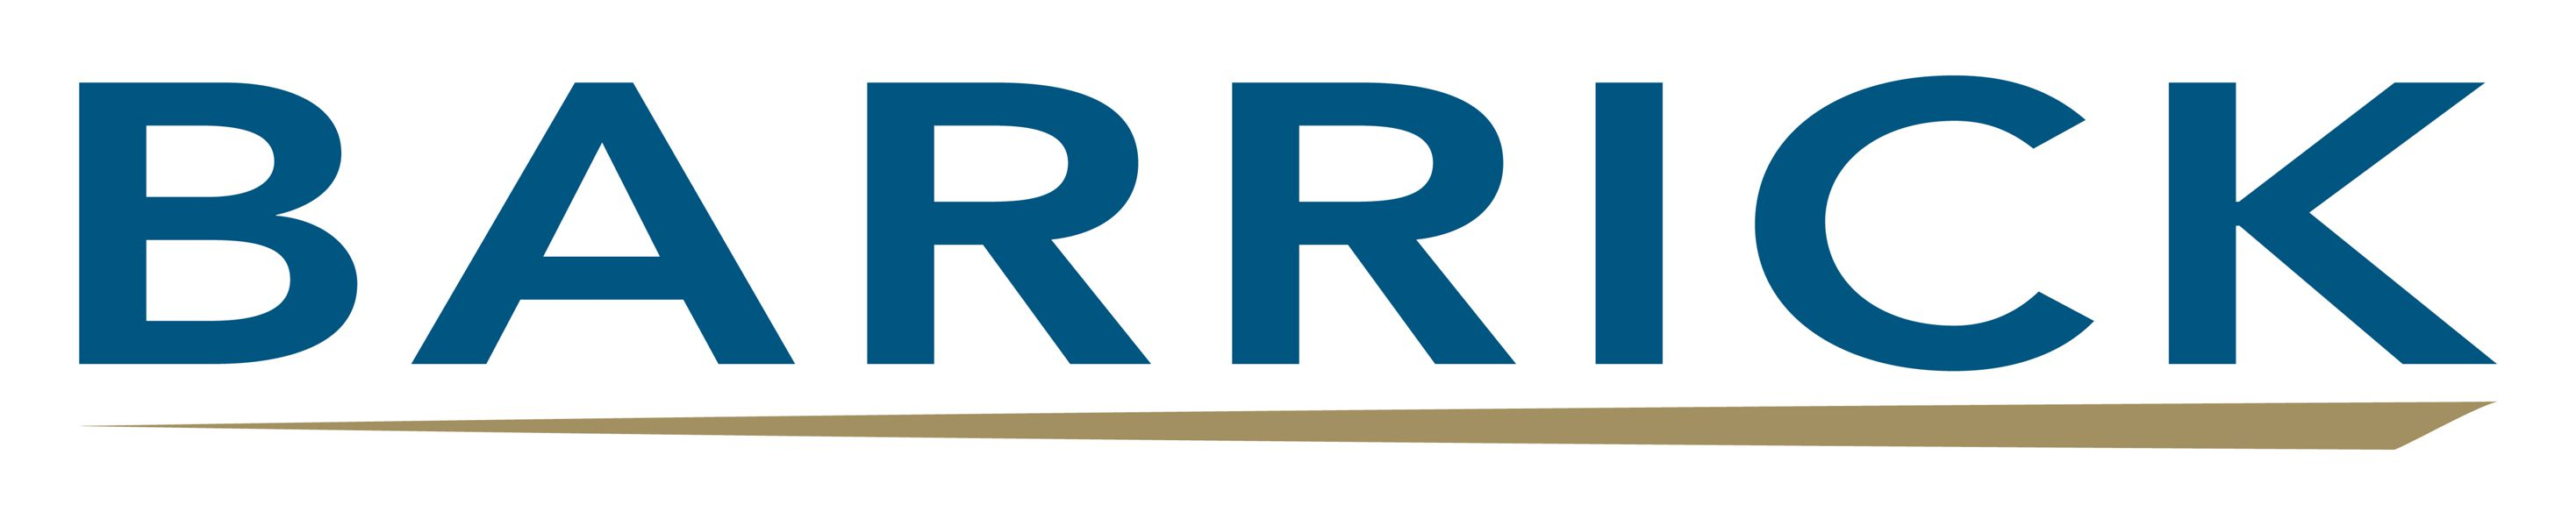 Barrick Announcement of: Preliminary Q4 2019 production results on January 16, 2020 and Q4 2019 results on February 12, 2020